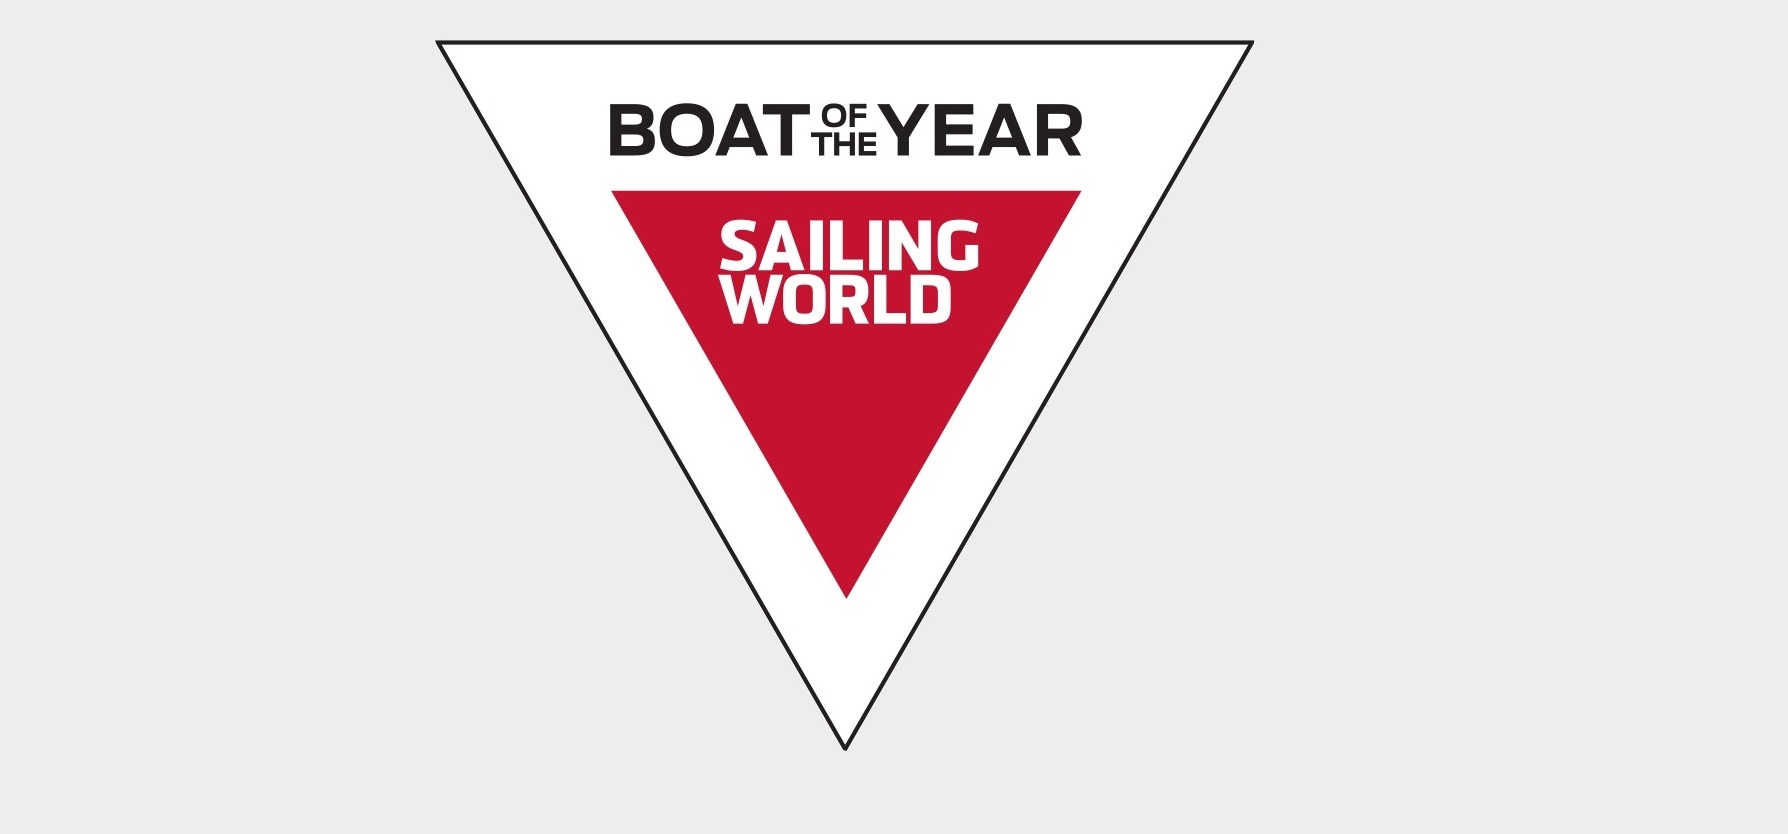 Voiliers élus Sailing World - Boat of the Year © Boat-Specs.com